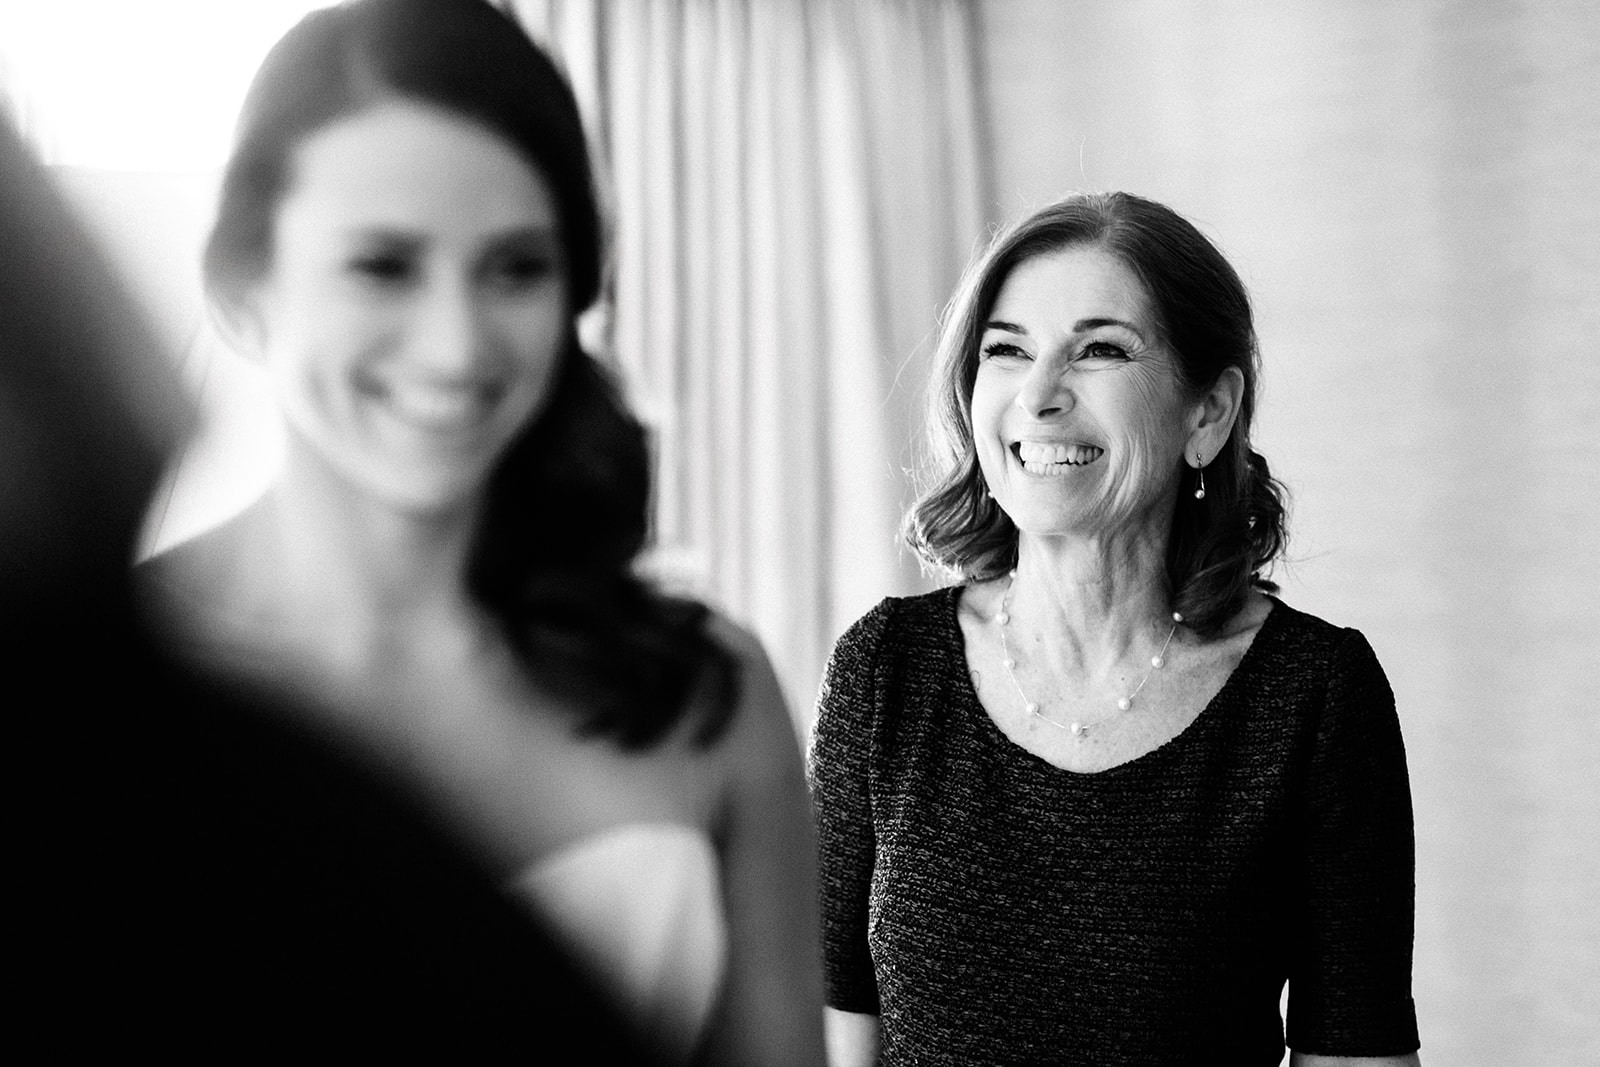 Let's just talk about all the sweet moments between Margaret and her parents. These are the looks and emotions that we look for as we're documenting a wedding day.